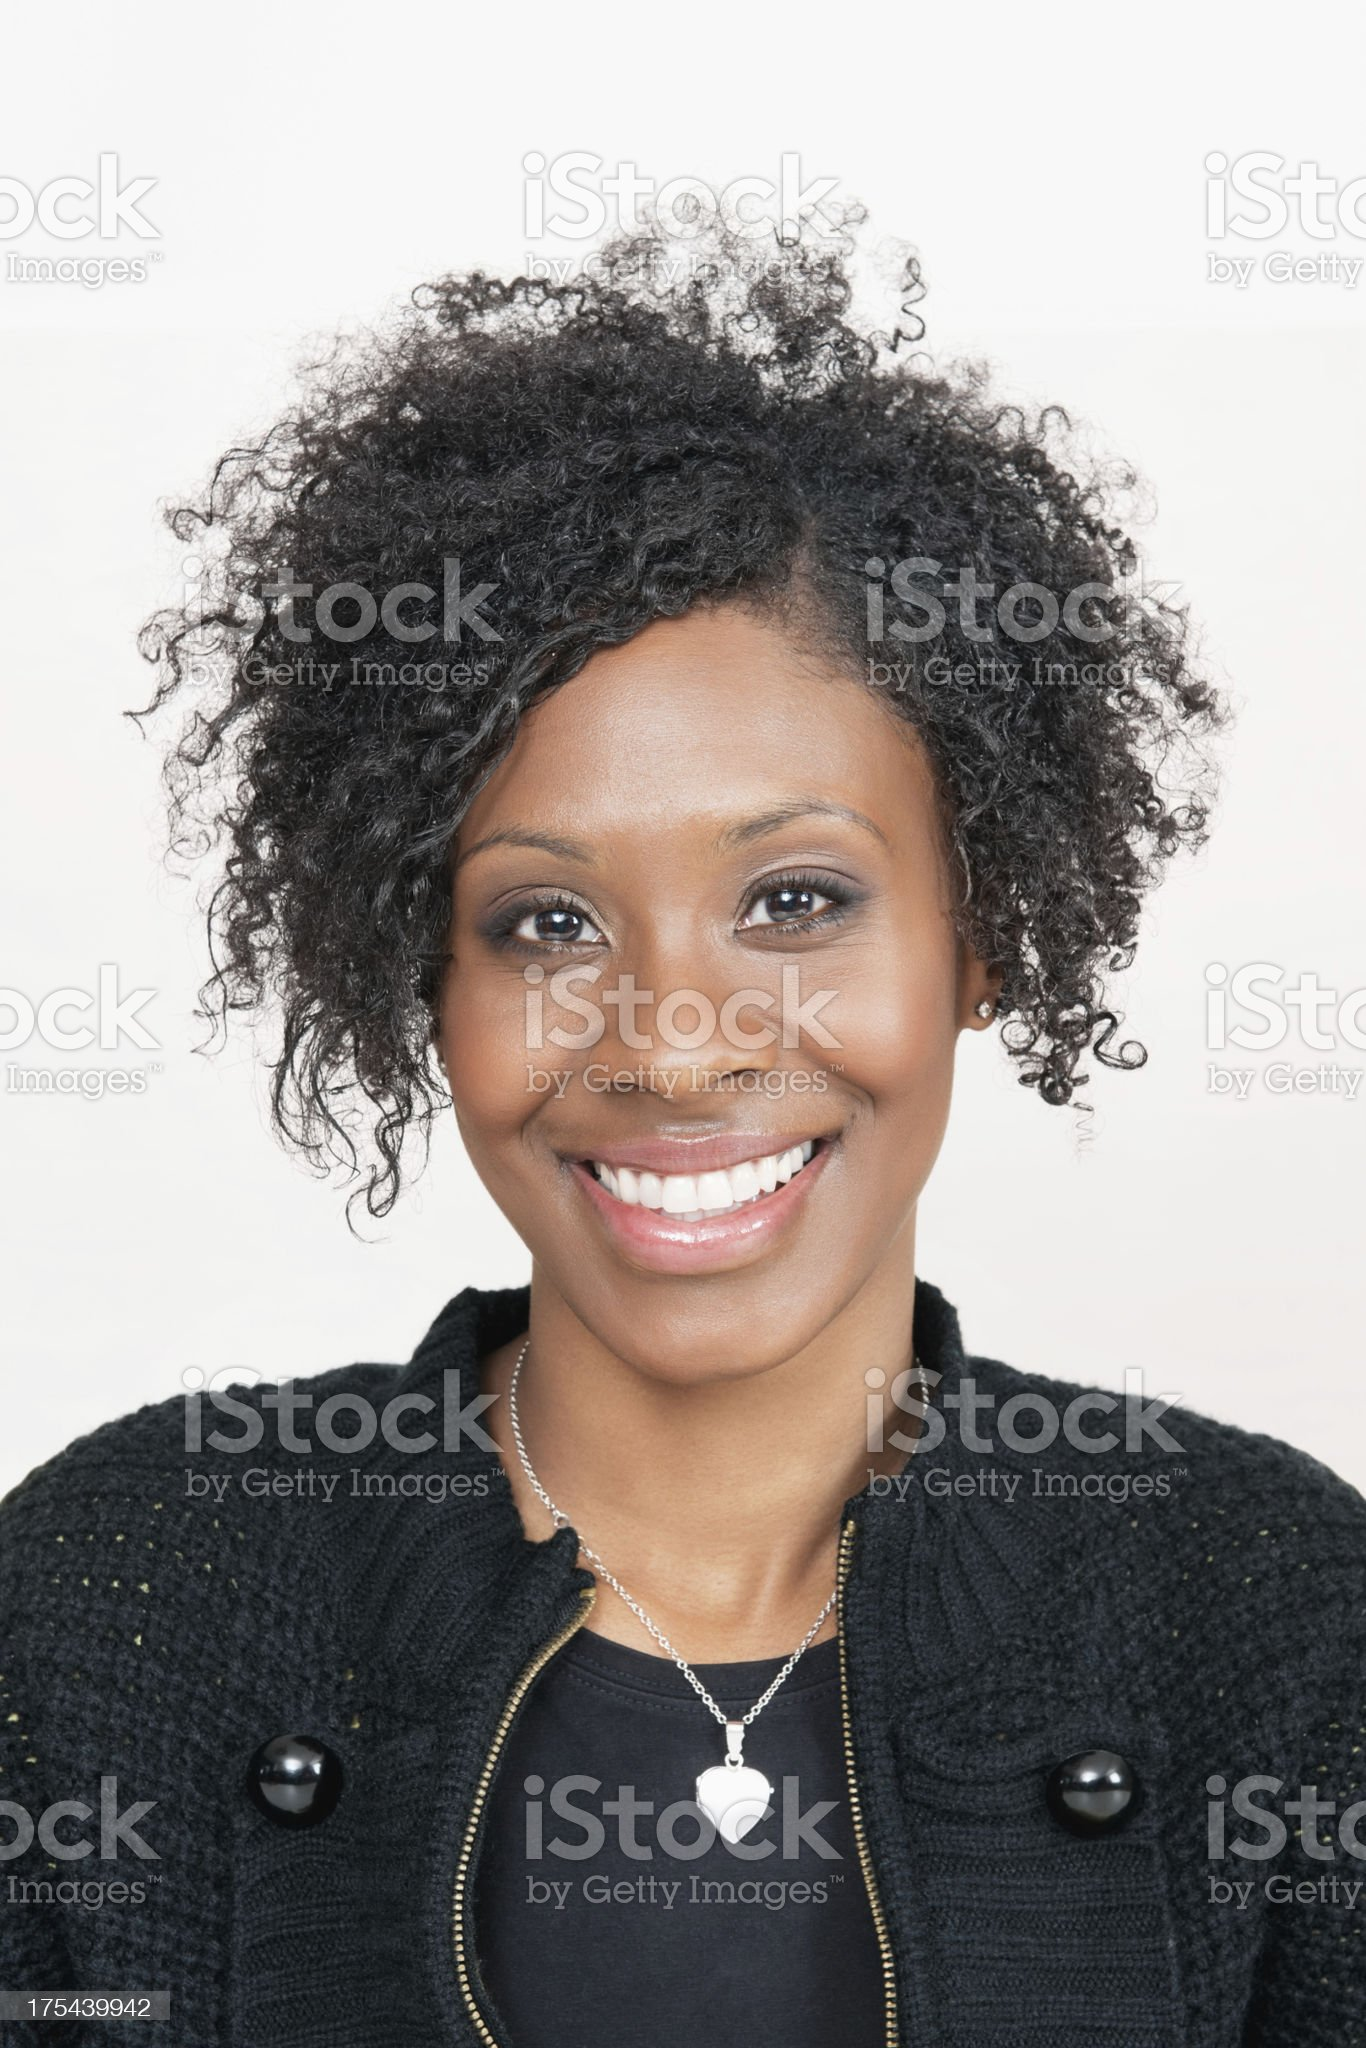 Beautiful Woman Smiling royalty-free stock photo